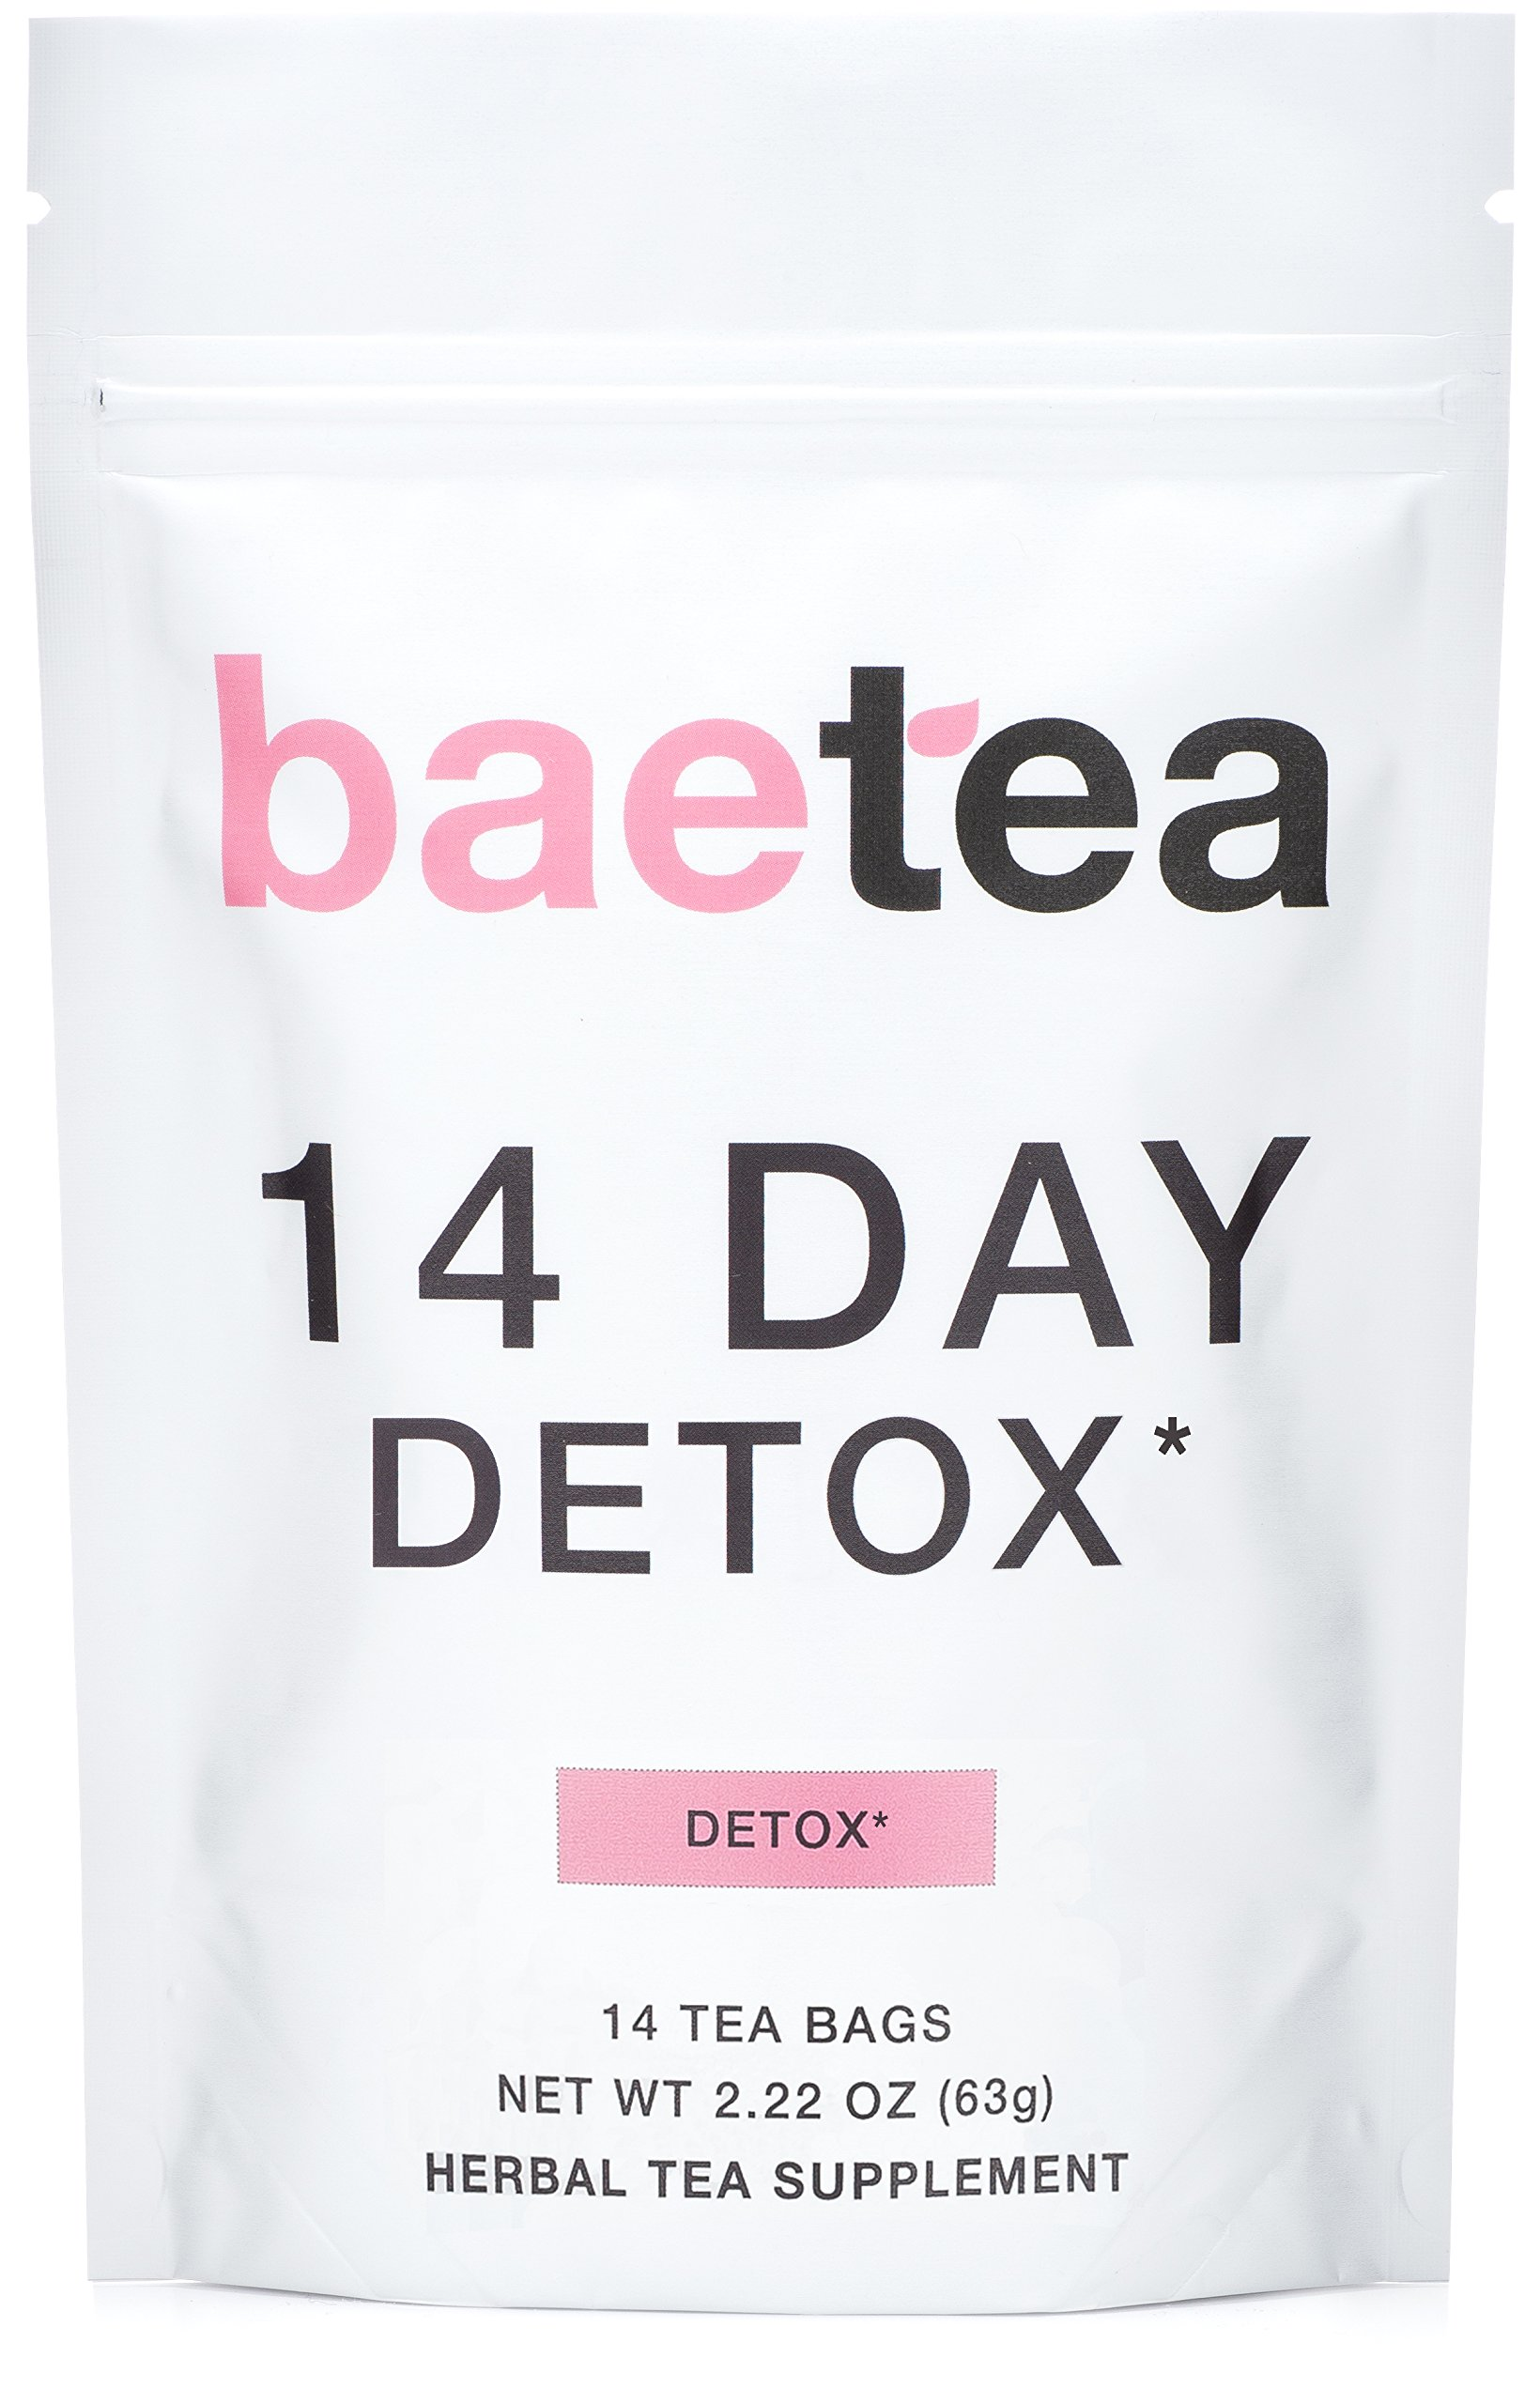 Baetea 14 Day Teatox Detox Herbal Tea Supplement (14 Tea Bags). by Baetea